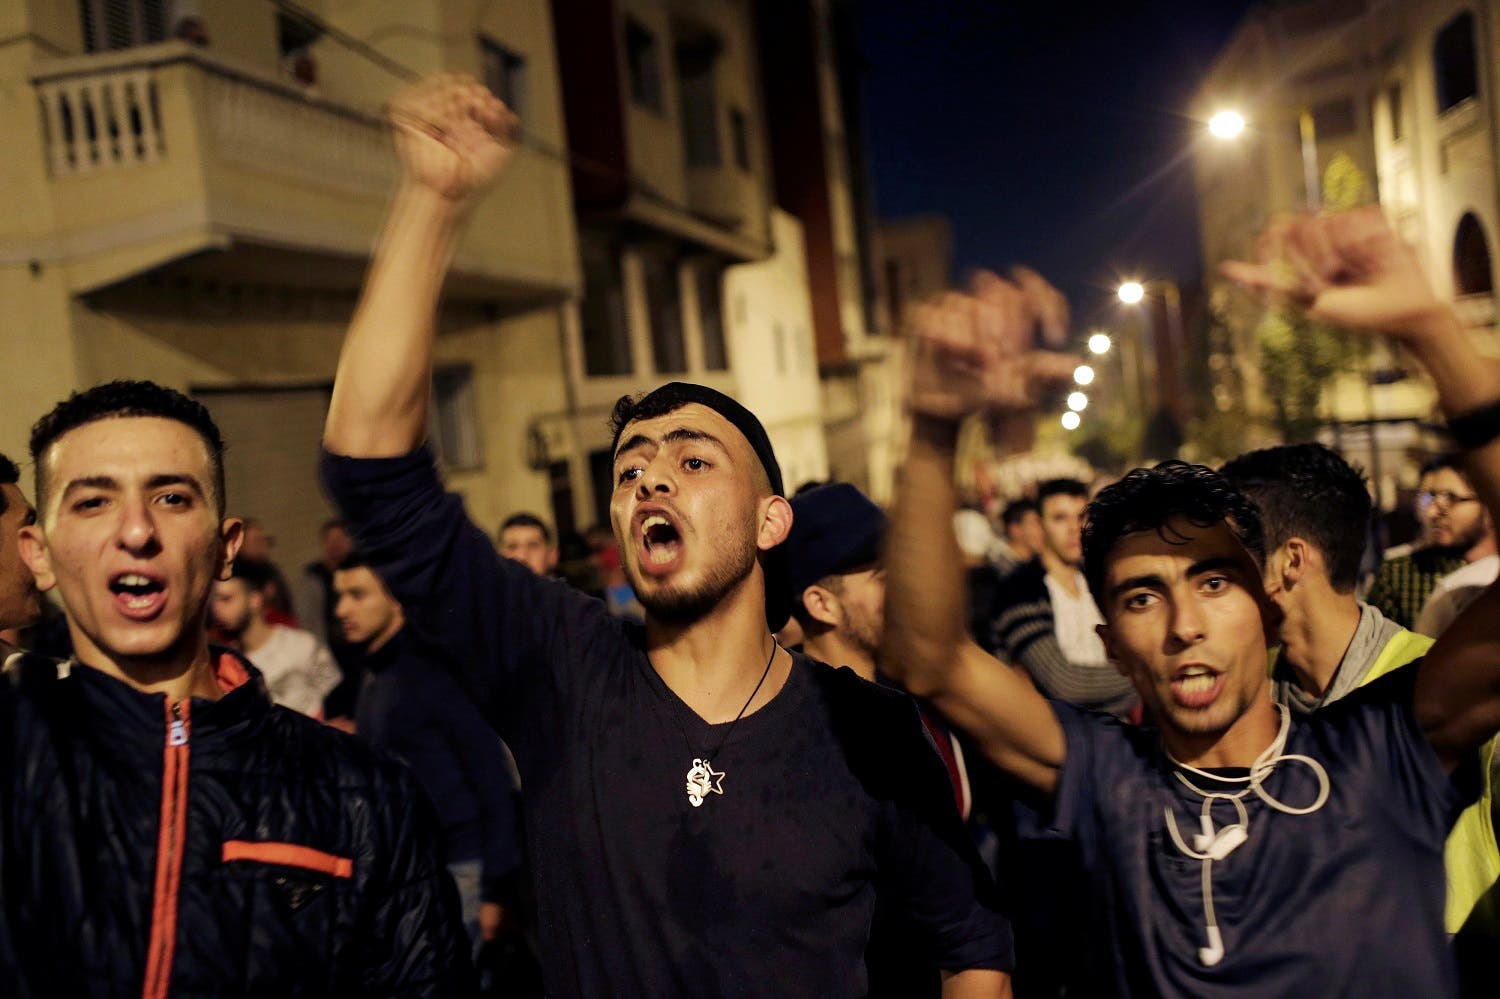 Moroccans shout slogans during a demonstration against official abuses and corruption in the town of Al-Hoceima, Morocco May 31, 2017. (Reuters)